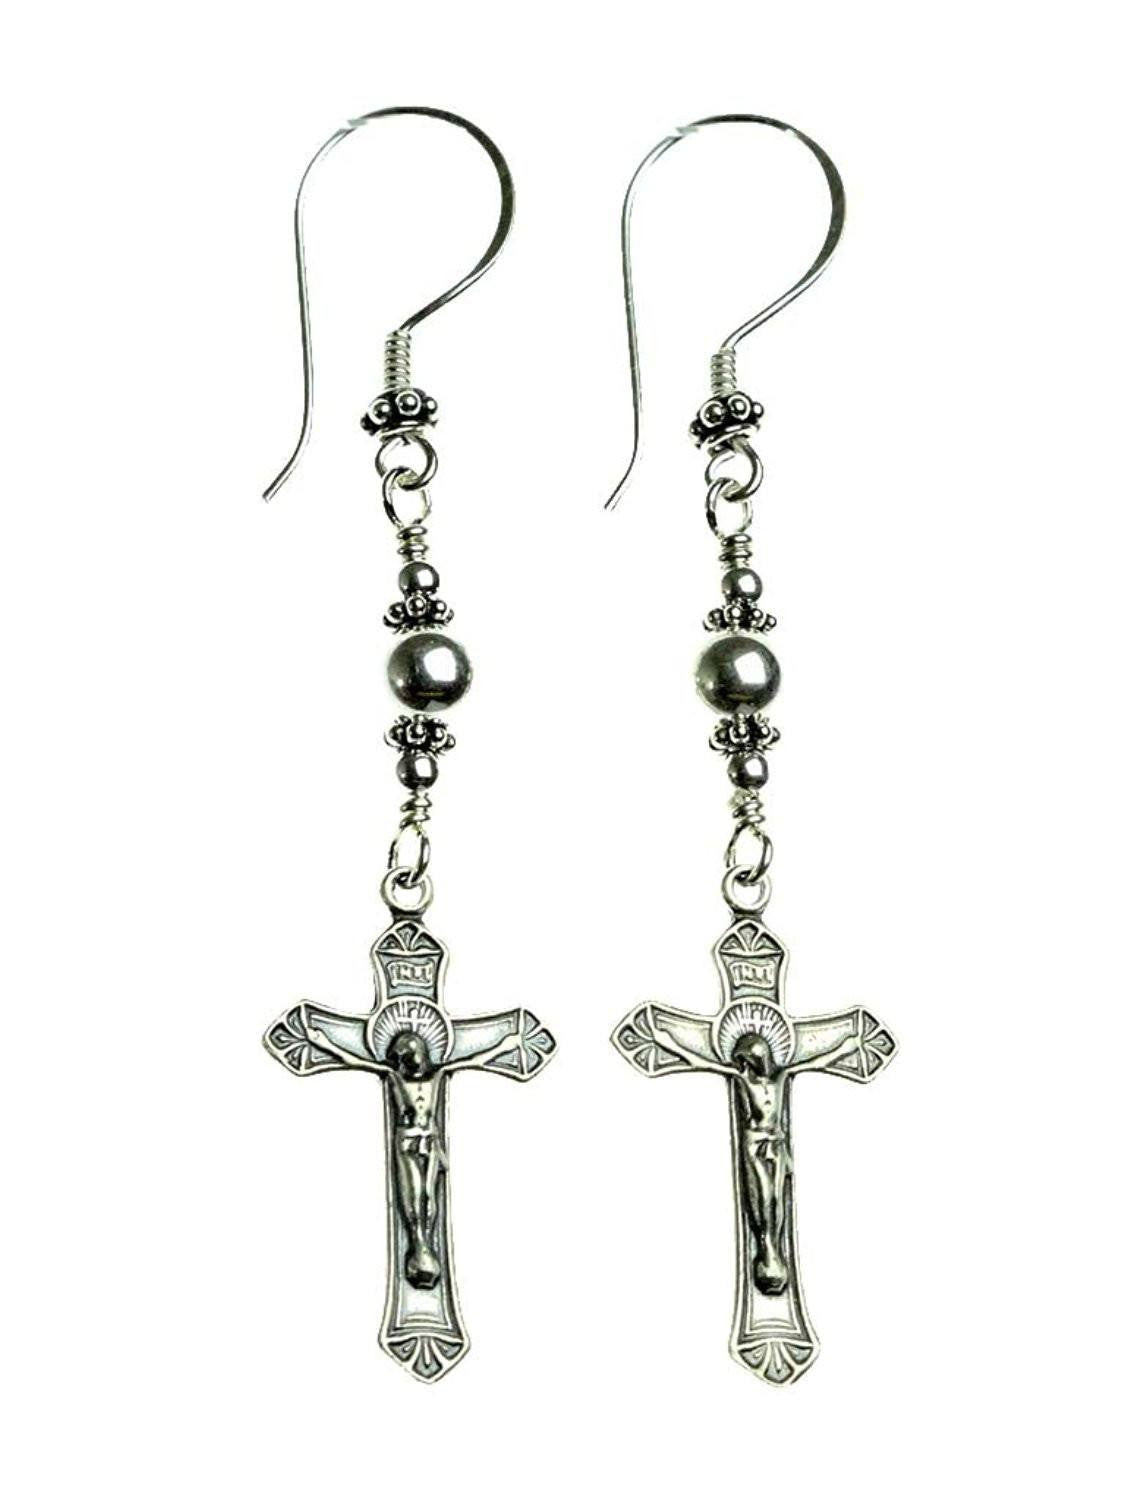 Handmade Sterling Silver Crucifix Earrings